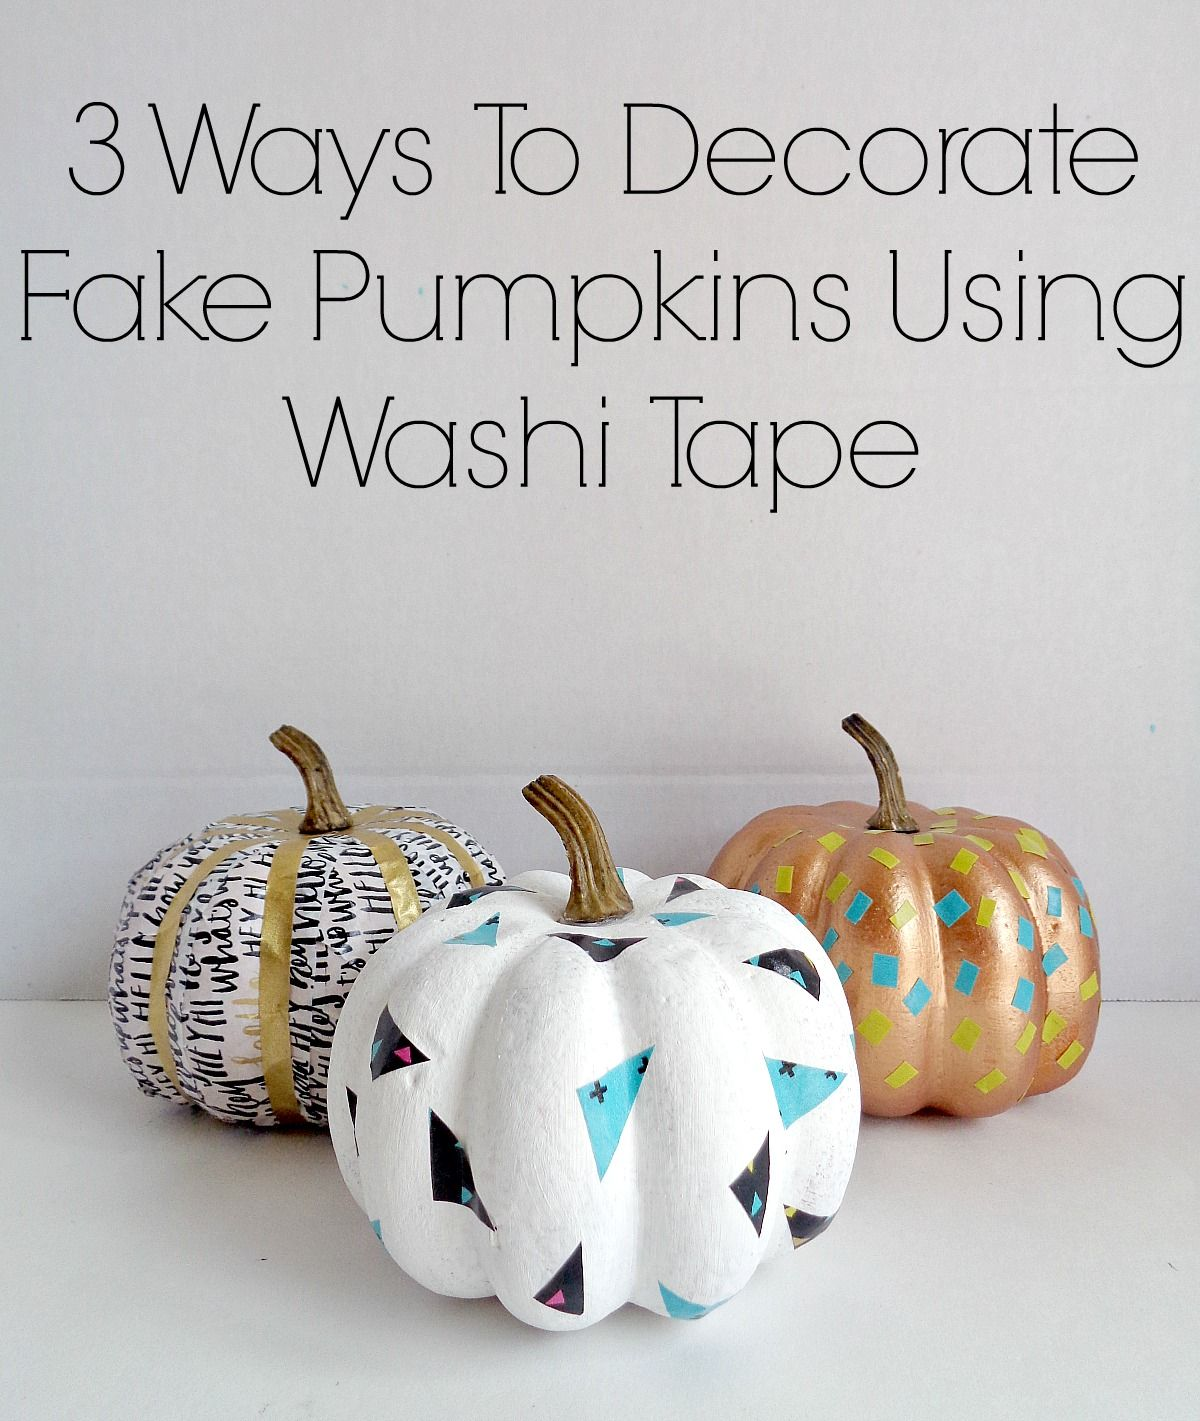 fake-pumpkins-using-washi-tape